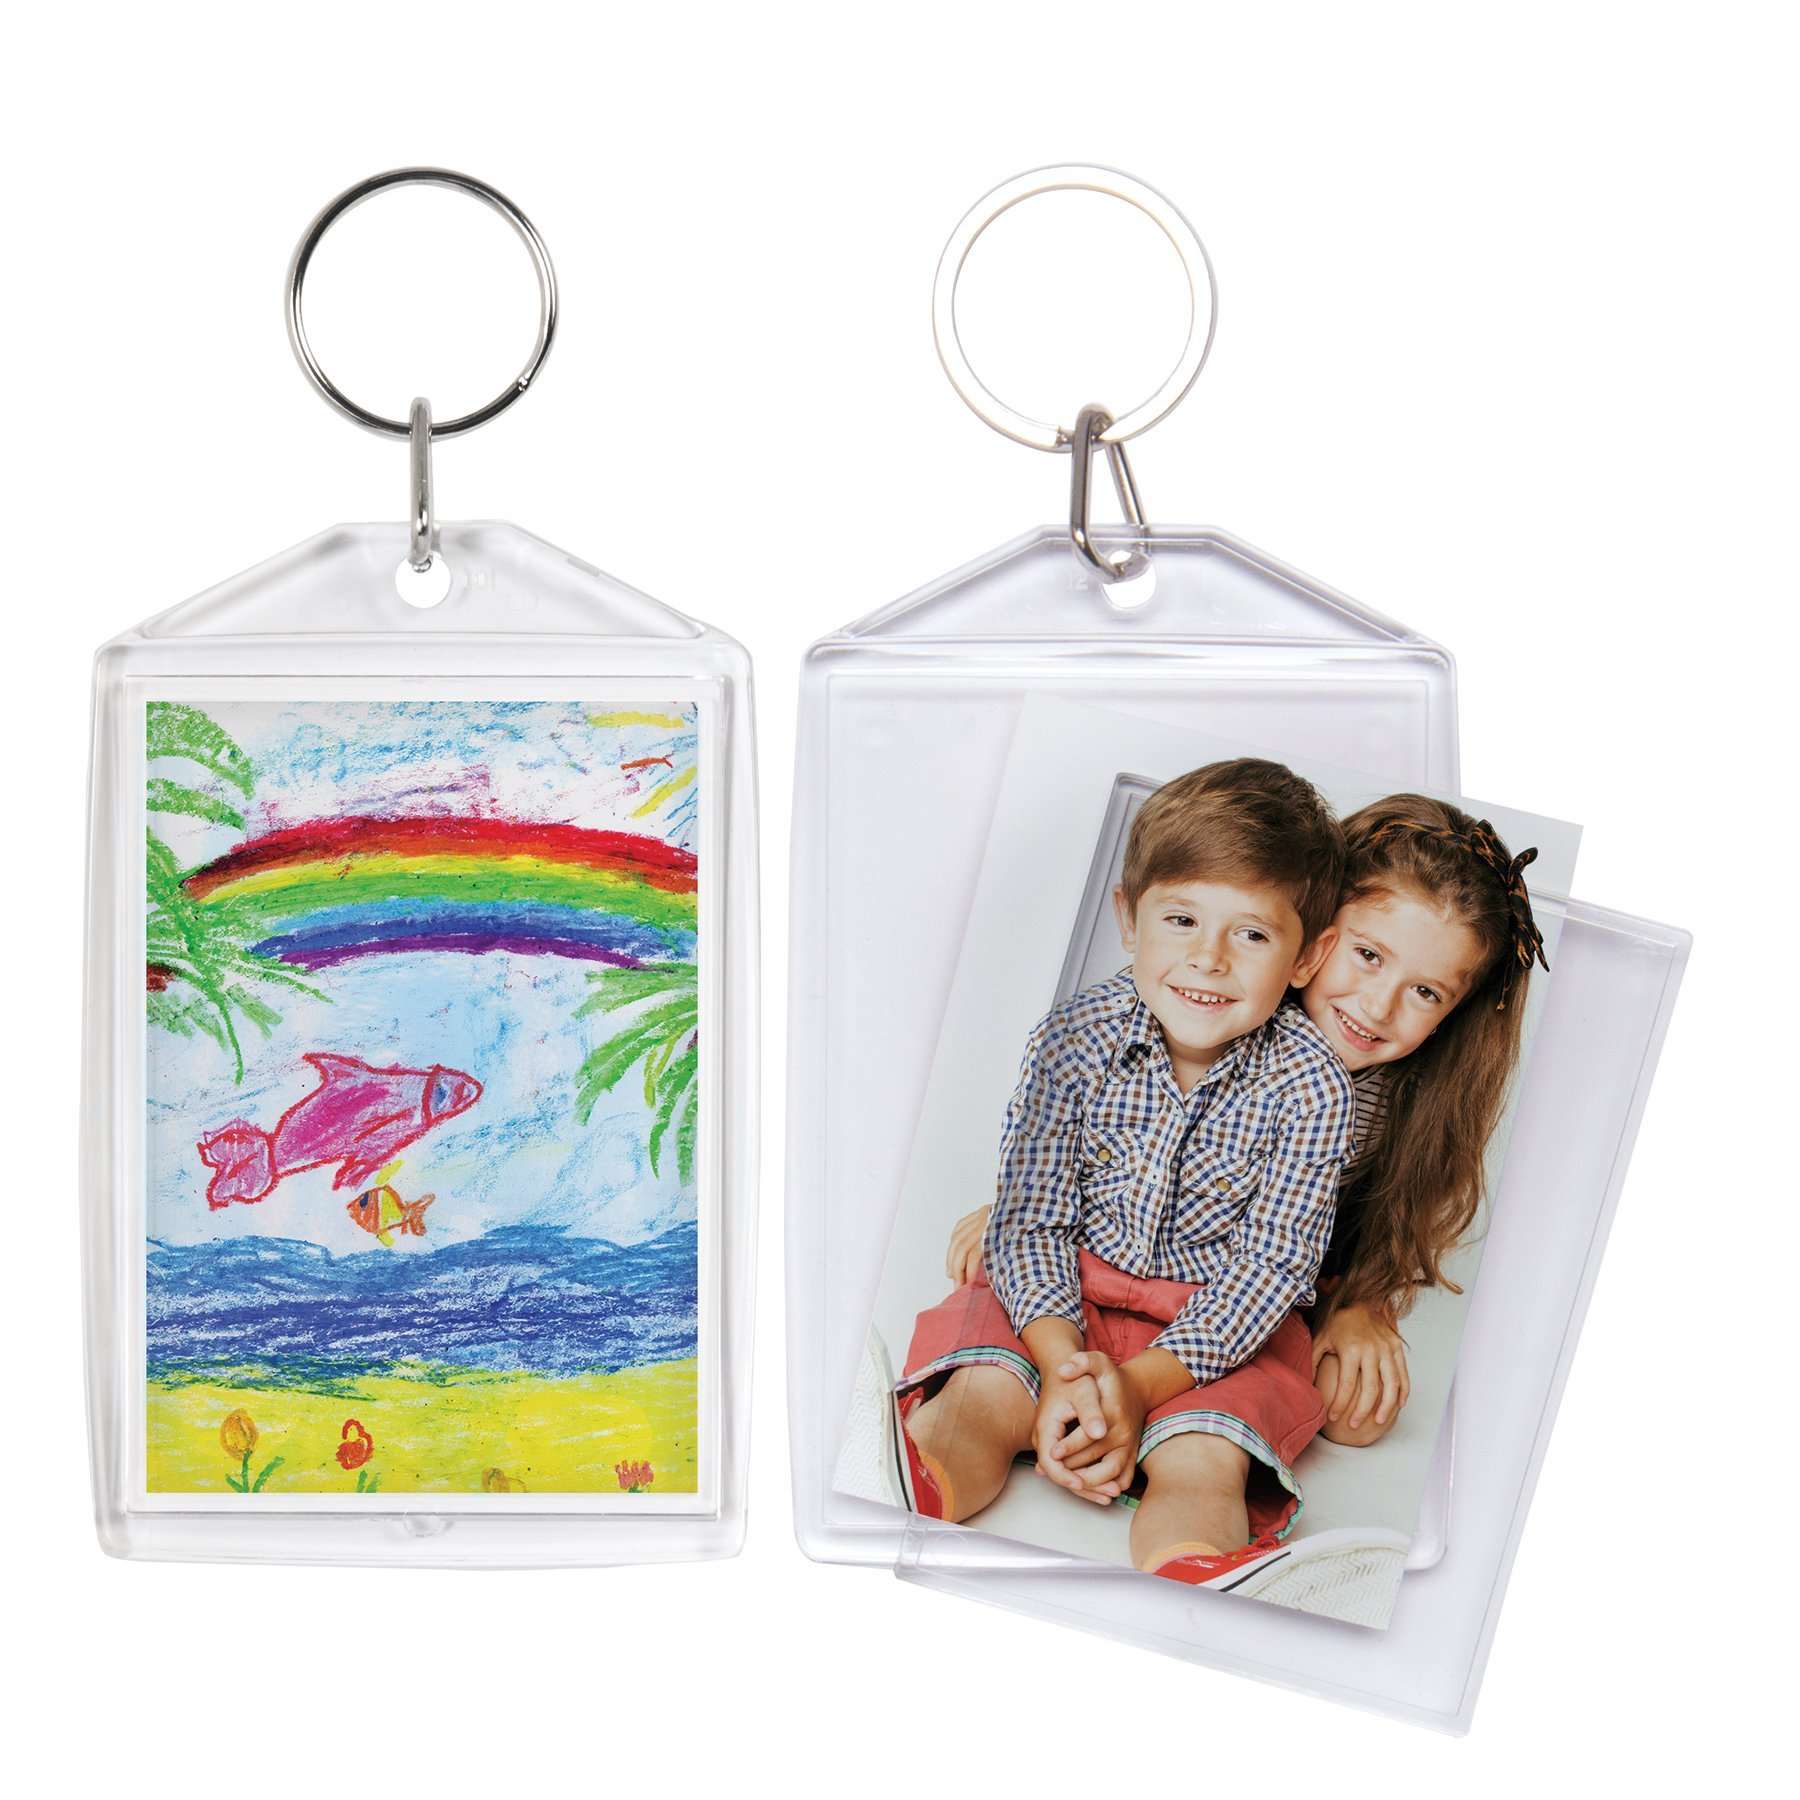 2x3 Acrylic Snap-in Photo Keychains - 72 Pack